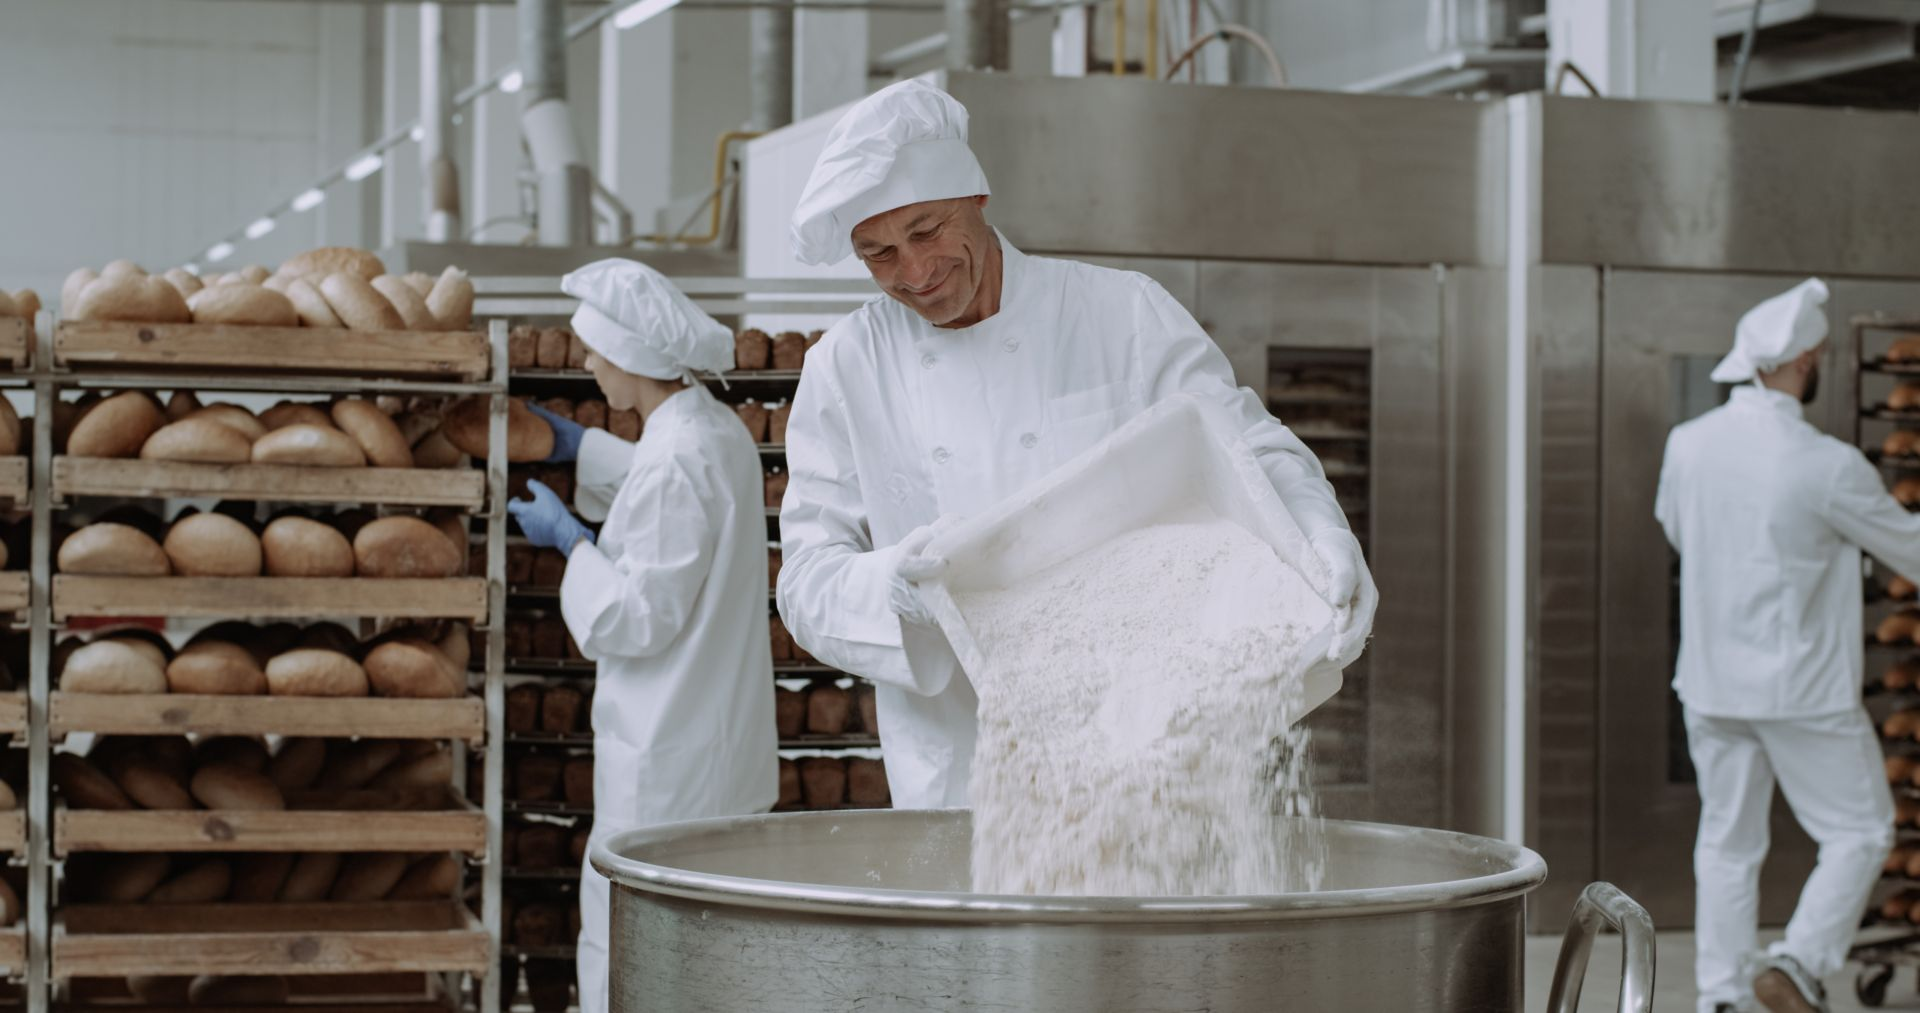 Bakery Weighing & Traceability